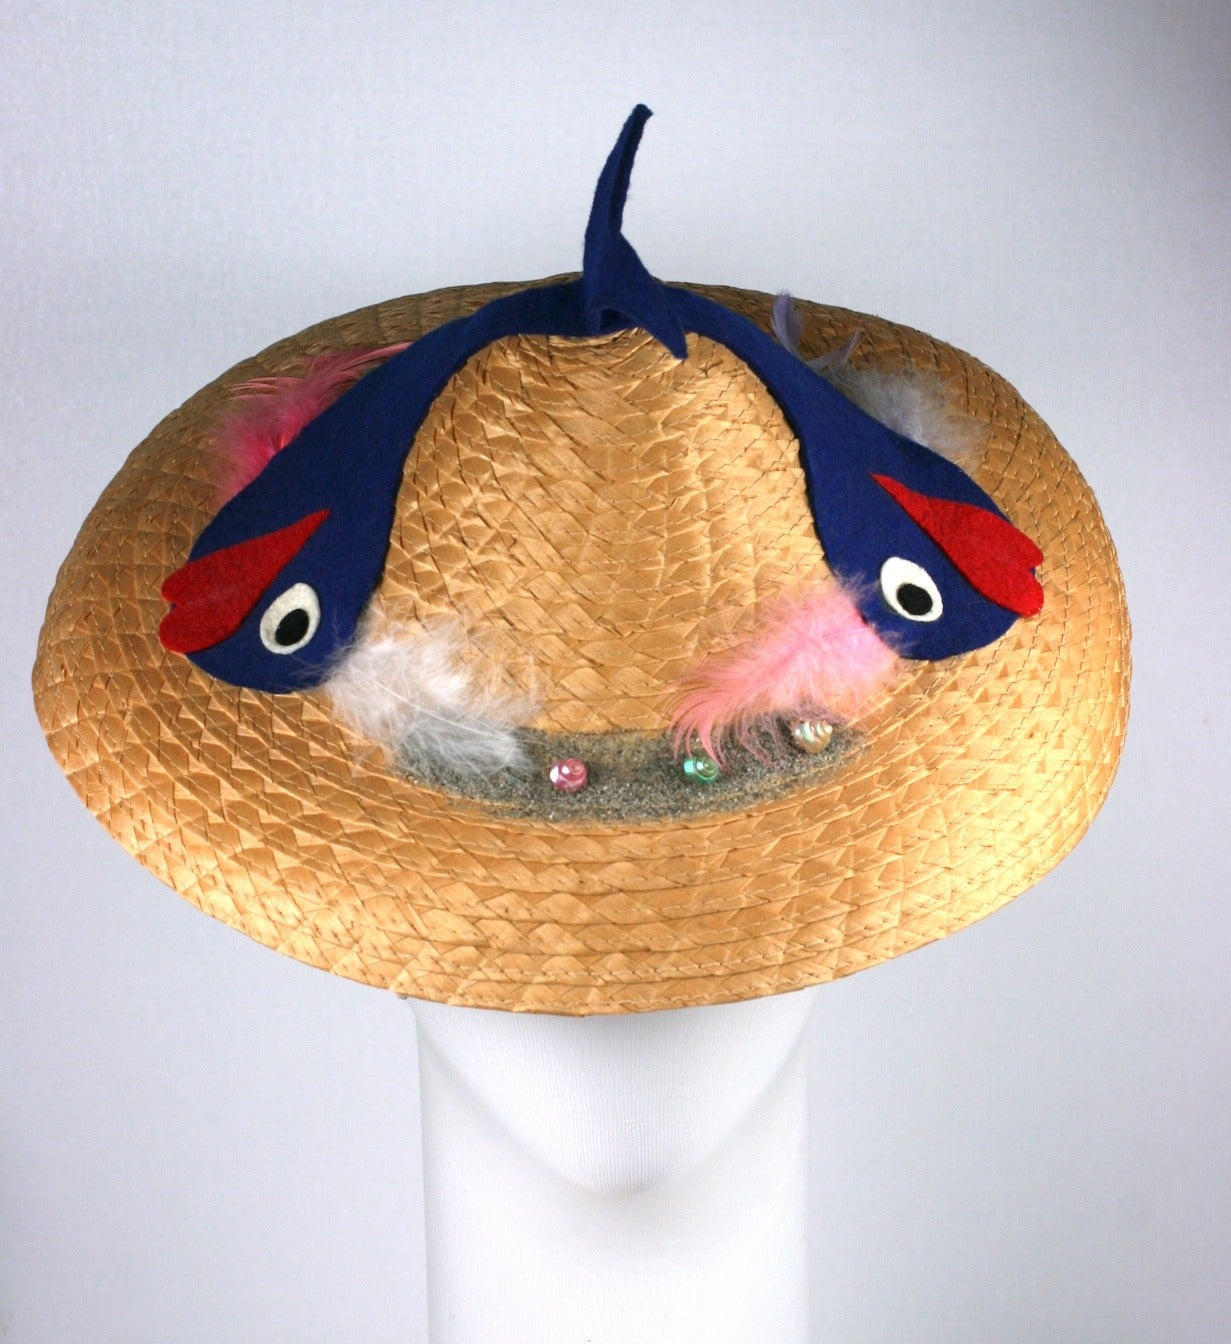 Amusing Italian Straw Beach Hat decorated with two charming felt cartoon baby whales with big grins. The whales' tails rises up out of the tip of hat. Further trimmed with seashells, mica glitter, and pastel feathers. Silly, charming 1950's Beach